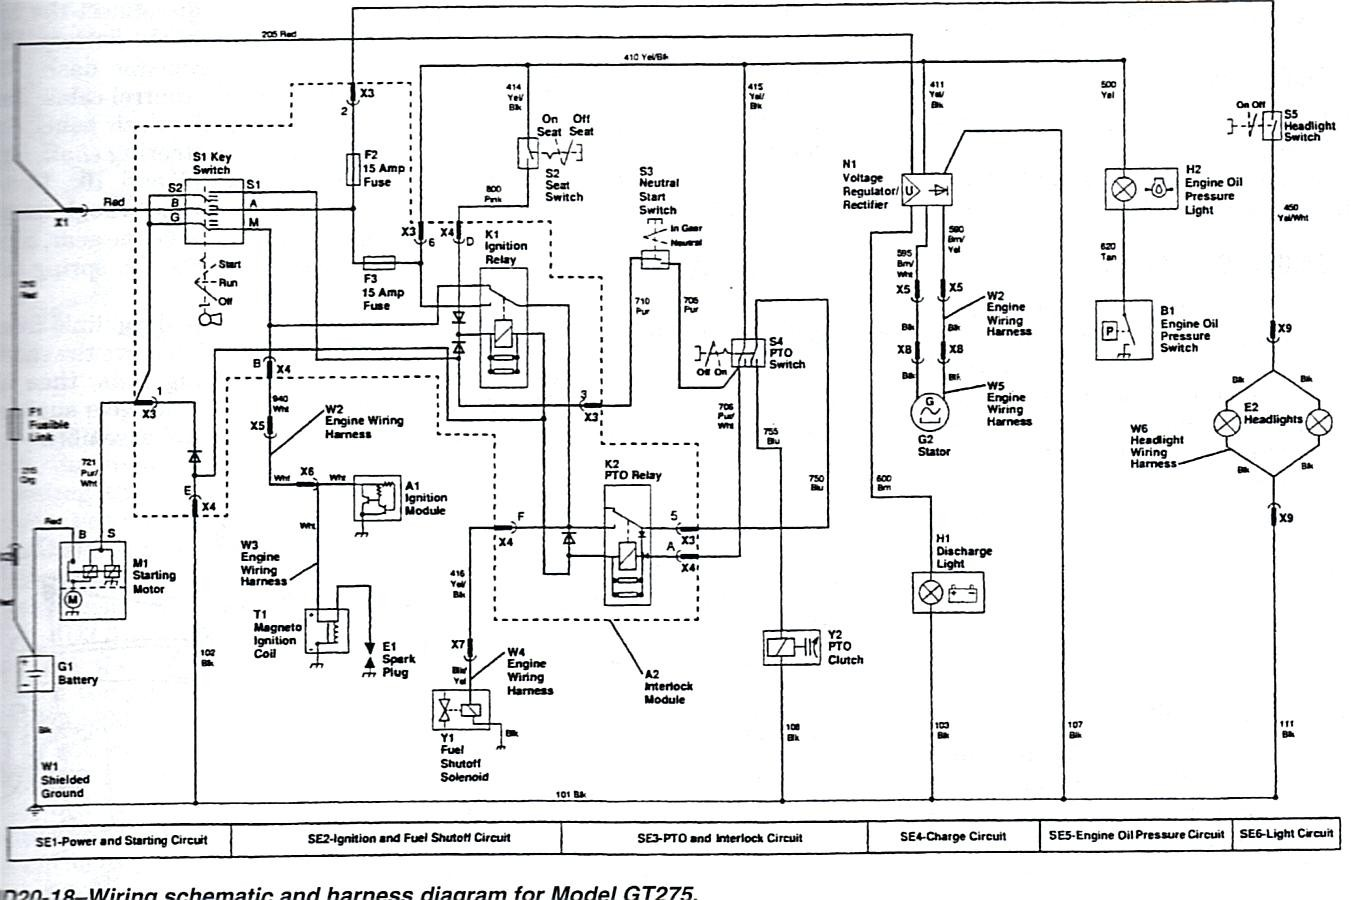 John Deere 310d Backhoe Wiring Diagram Schematic Diagrams Excavator Circuit Connection U2022 317 Ignition